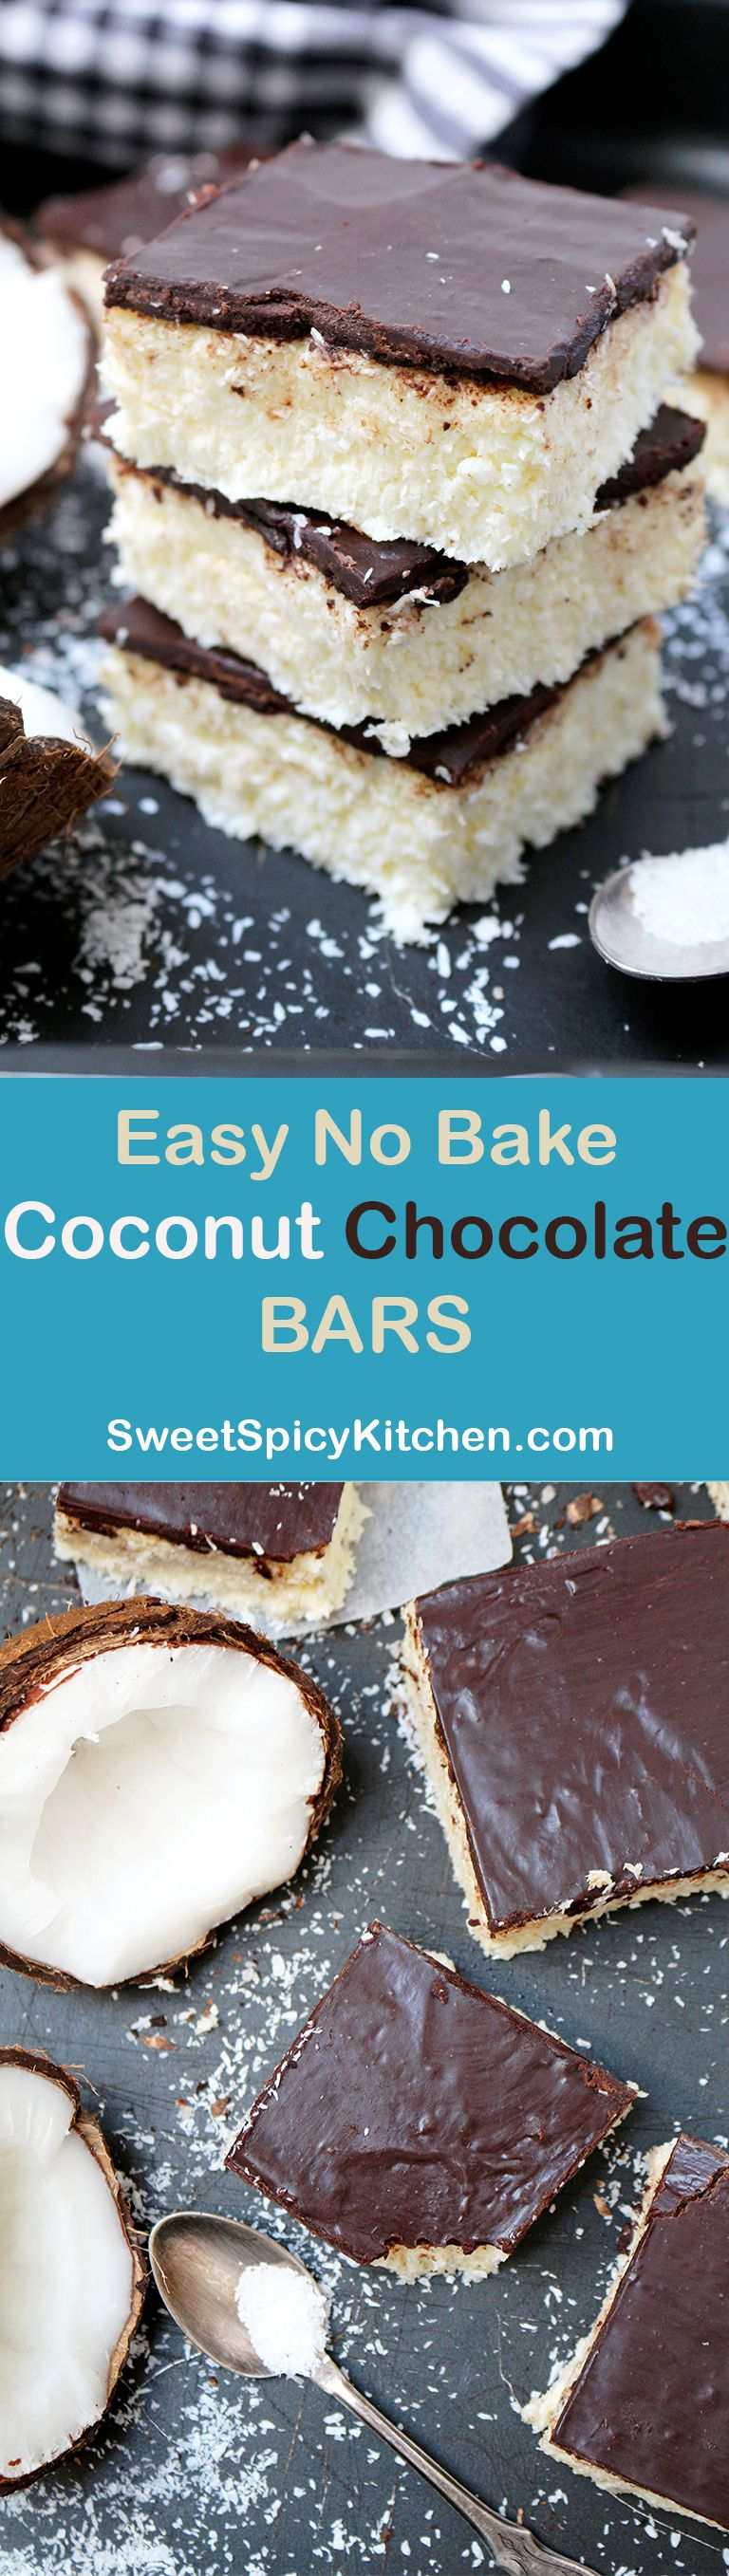 EASY NO BAKE COCONUT CHOCOLATE BARS - light and refreshing,melt in ...